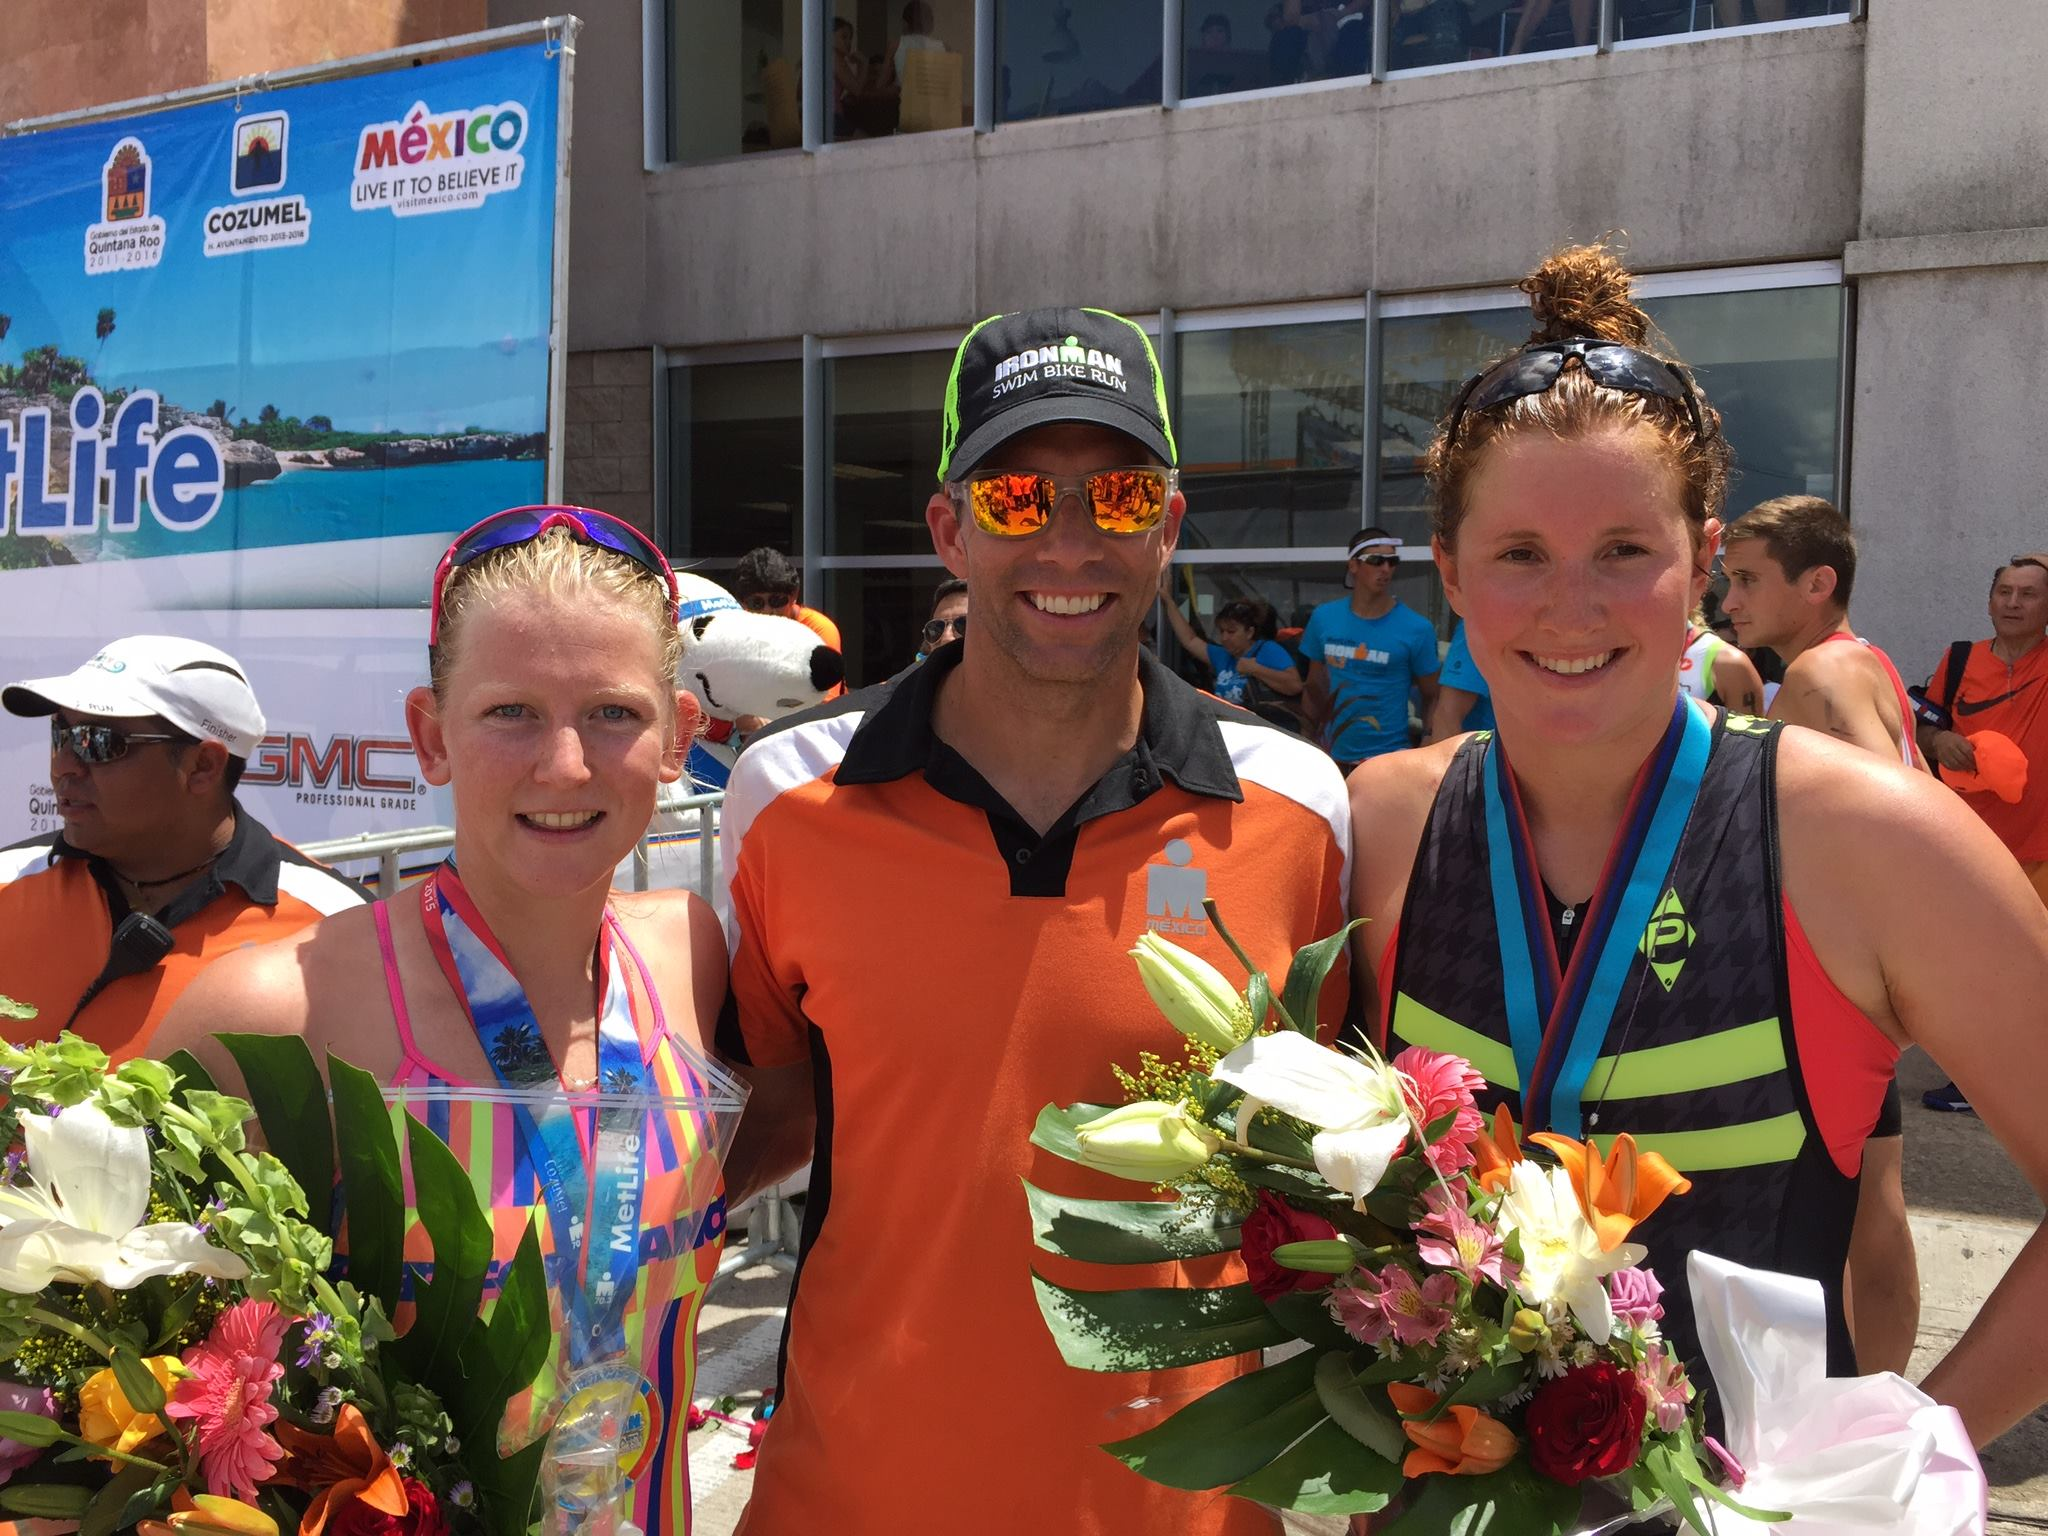 Seymour, Lovato and Stotts at Ironman 70.3 Cozumel (photo by Lovato Performance)